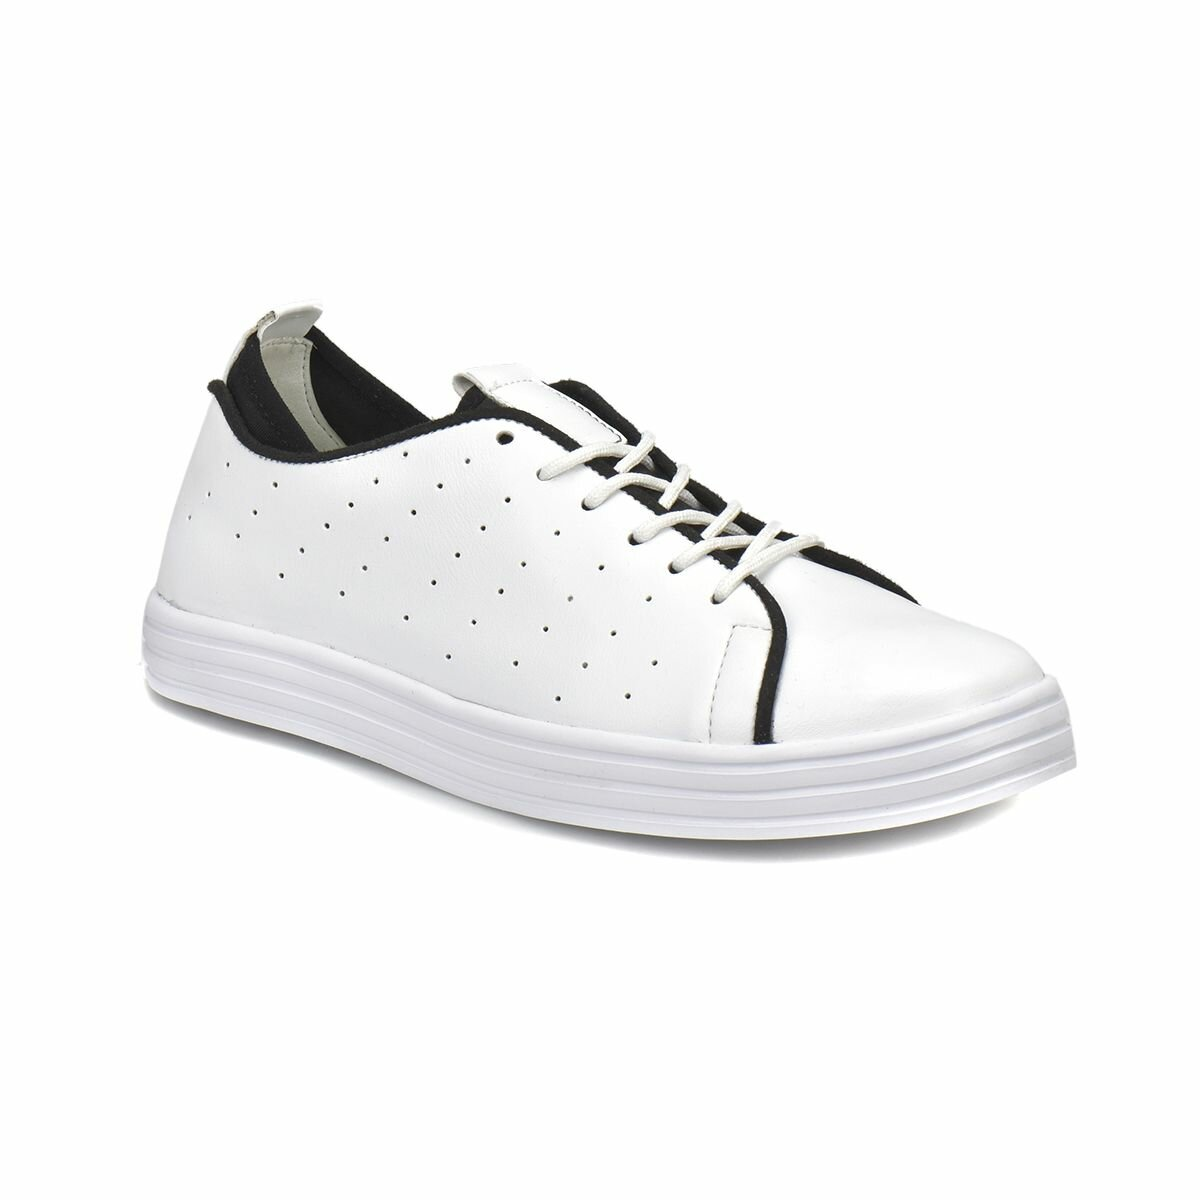 FLO CS18030 White Women 'S Sneaker Shoes Art Bella